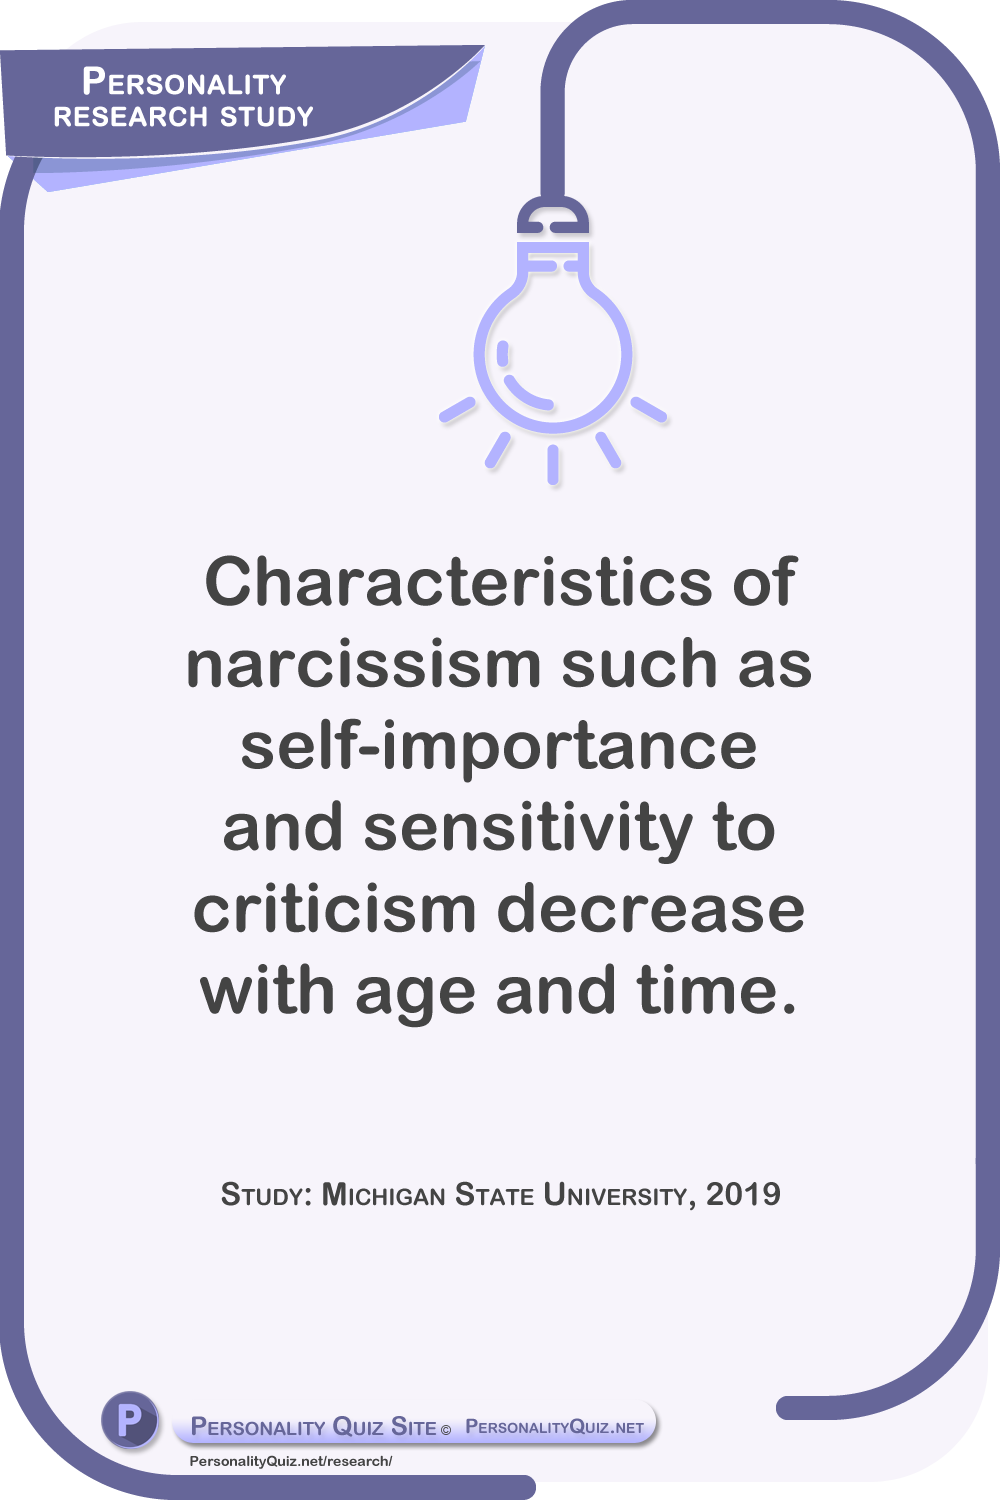 Characteristics of narcissism such as feeling self-important, being sensitive to criticism, and imposing your views decrease with age and time. Study: Michigan State University, 2019